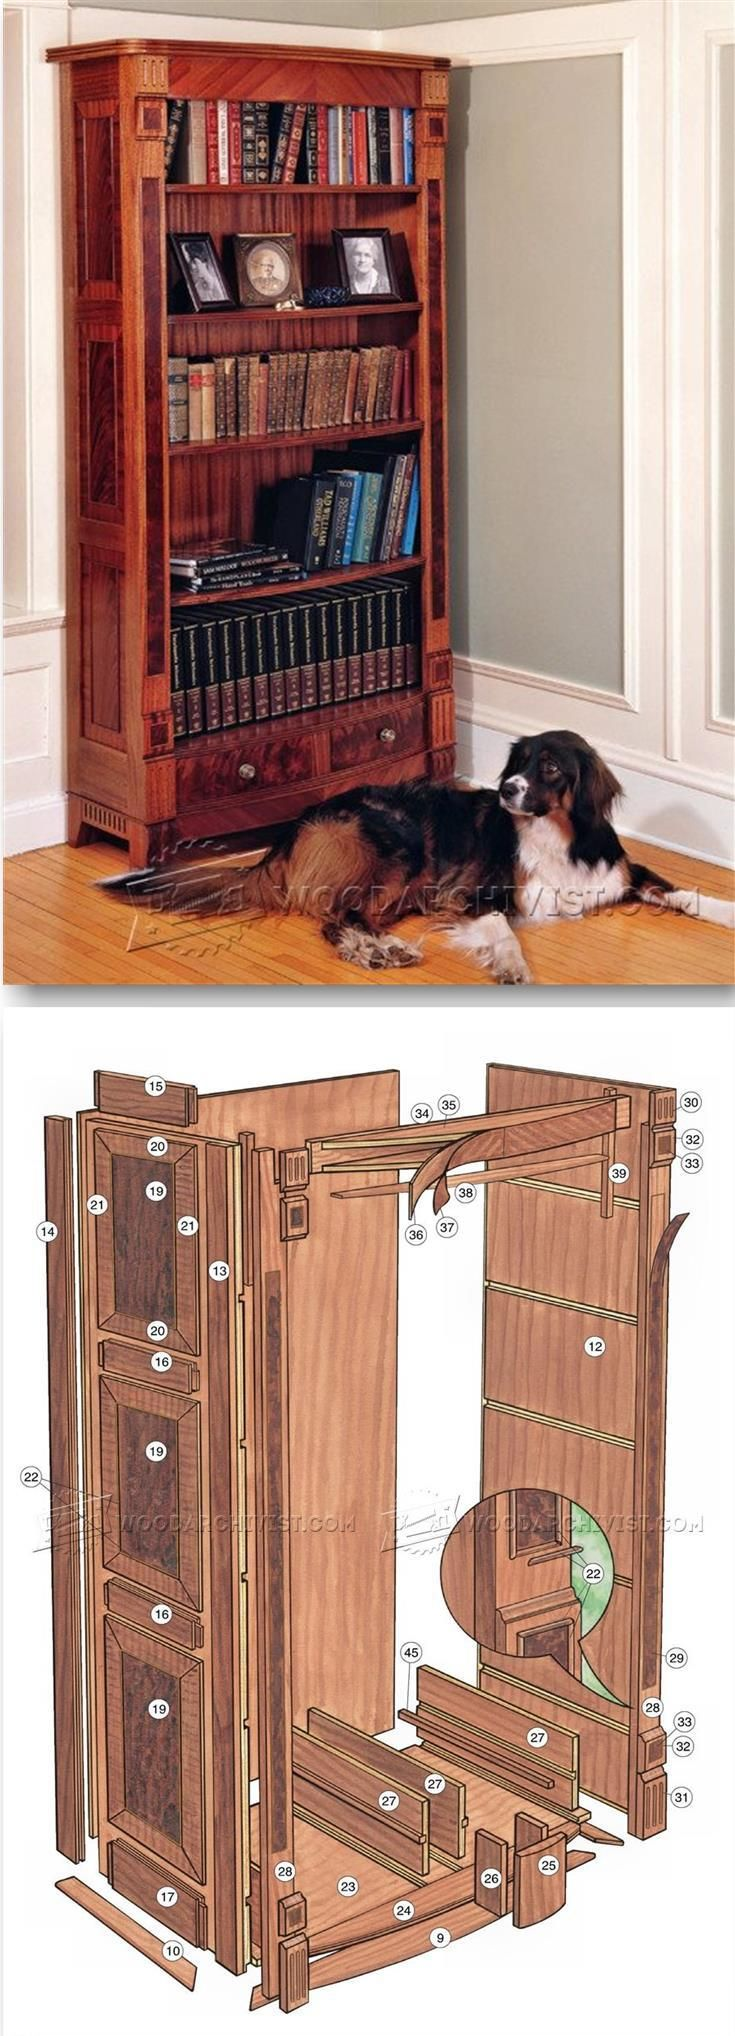 best woodworking images on pinterest craft woodworking and